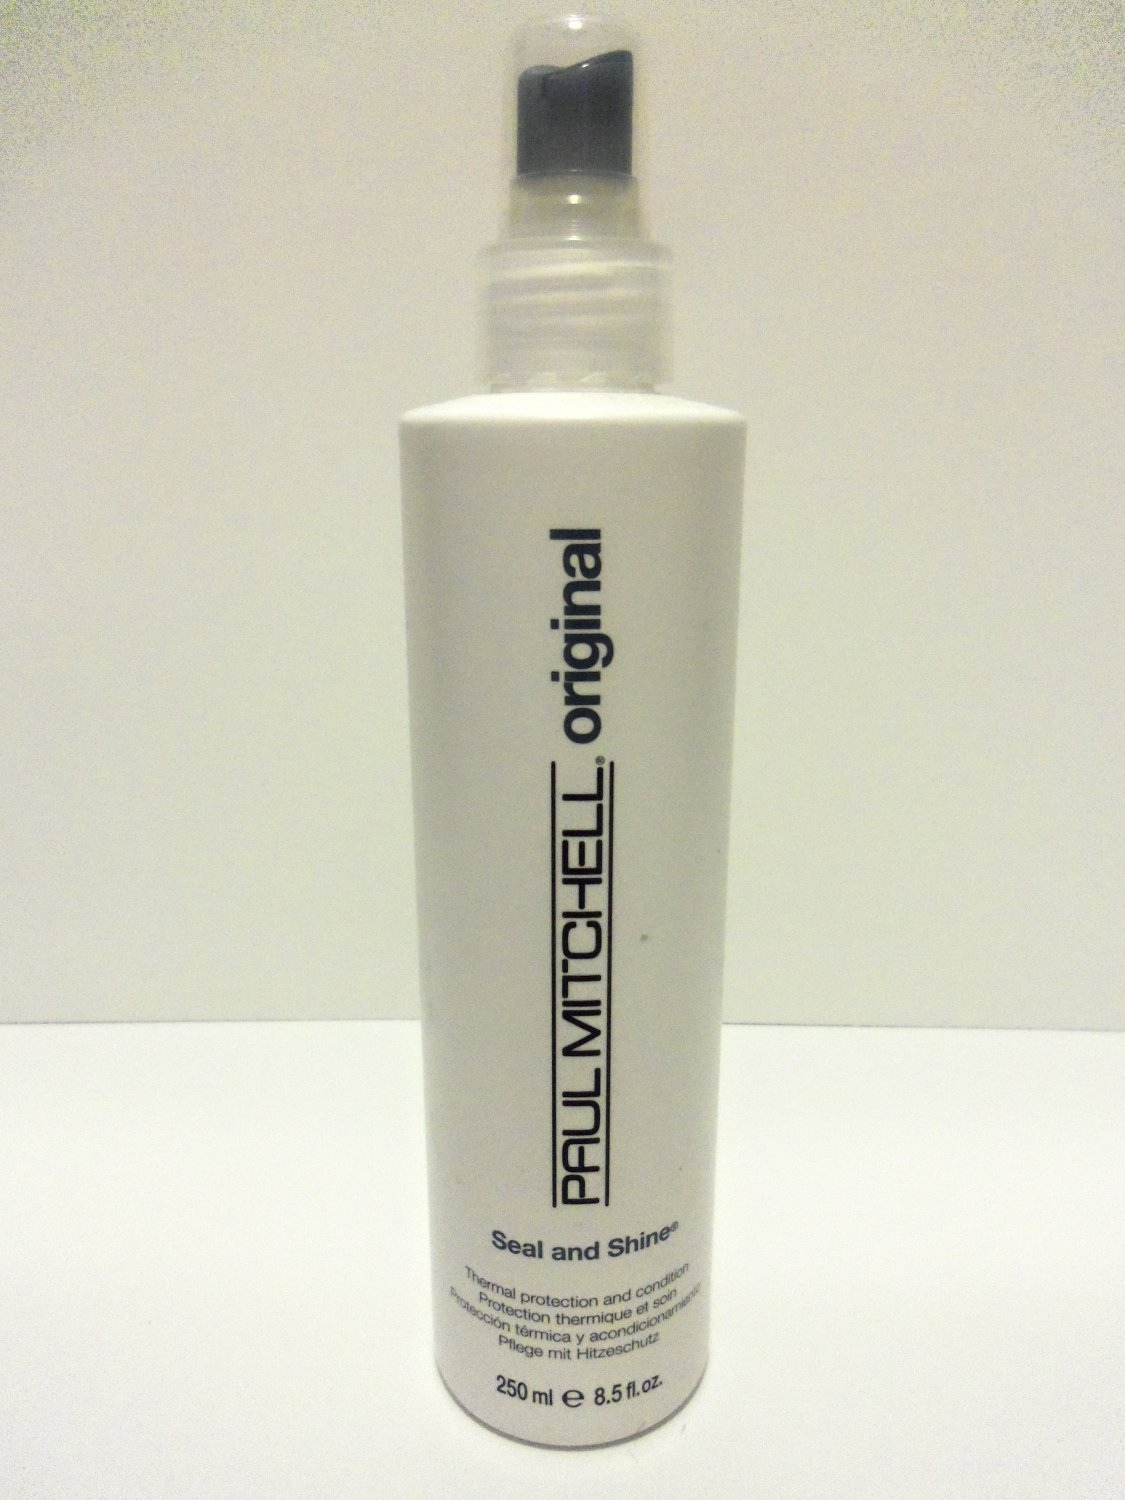 Paul Mitchell Original Seal and Shine 8.5fl oz